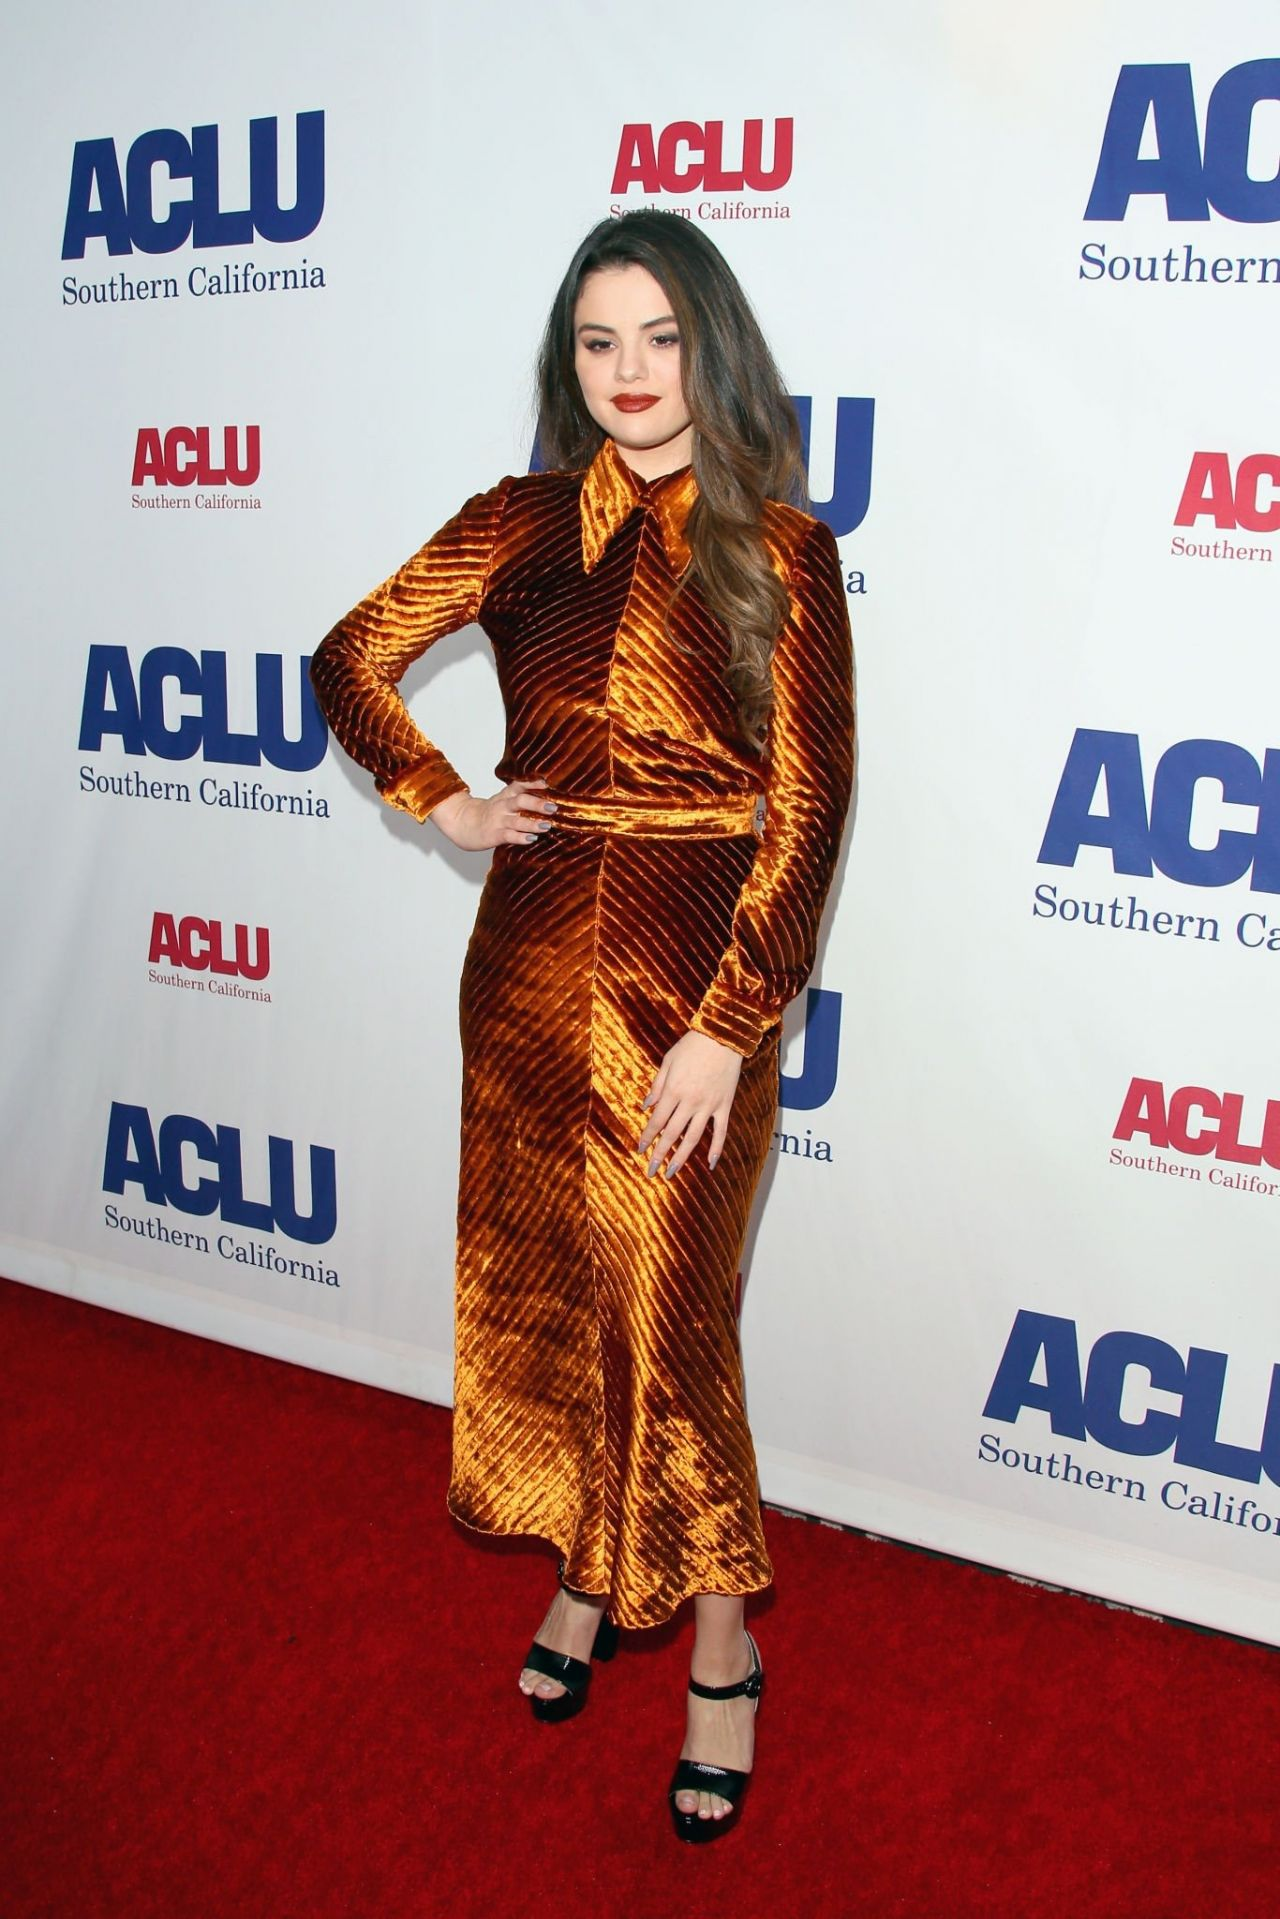 selena-gomez-in-prada-2019-ucla-socals-bill-of-rights-dinner-inla